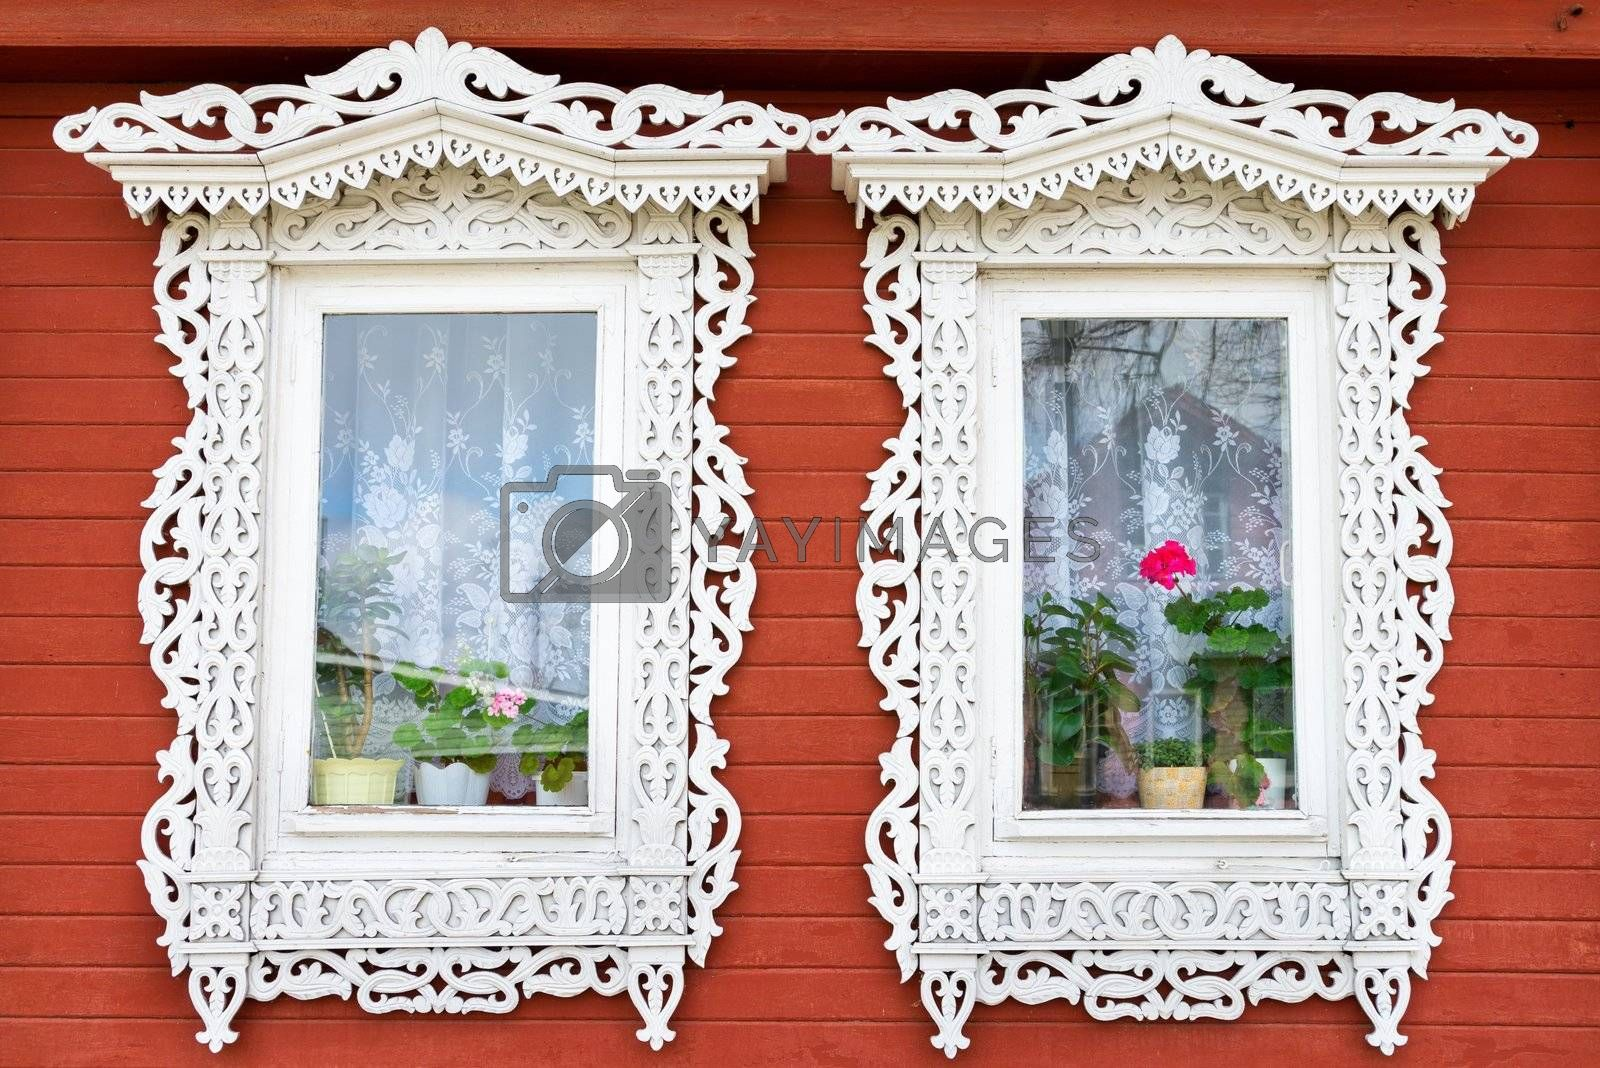 Two traditional Russian wooden window with flowers on windowsills